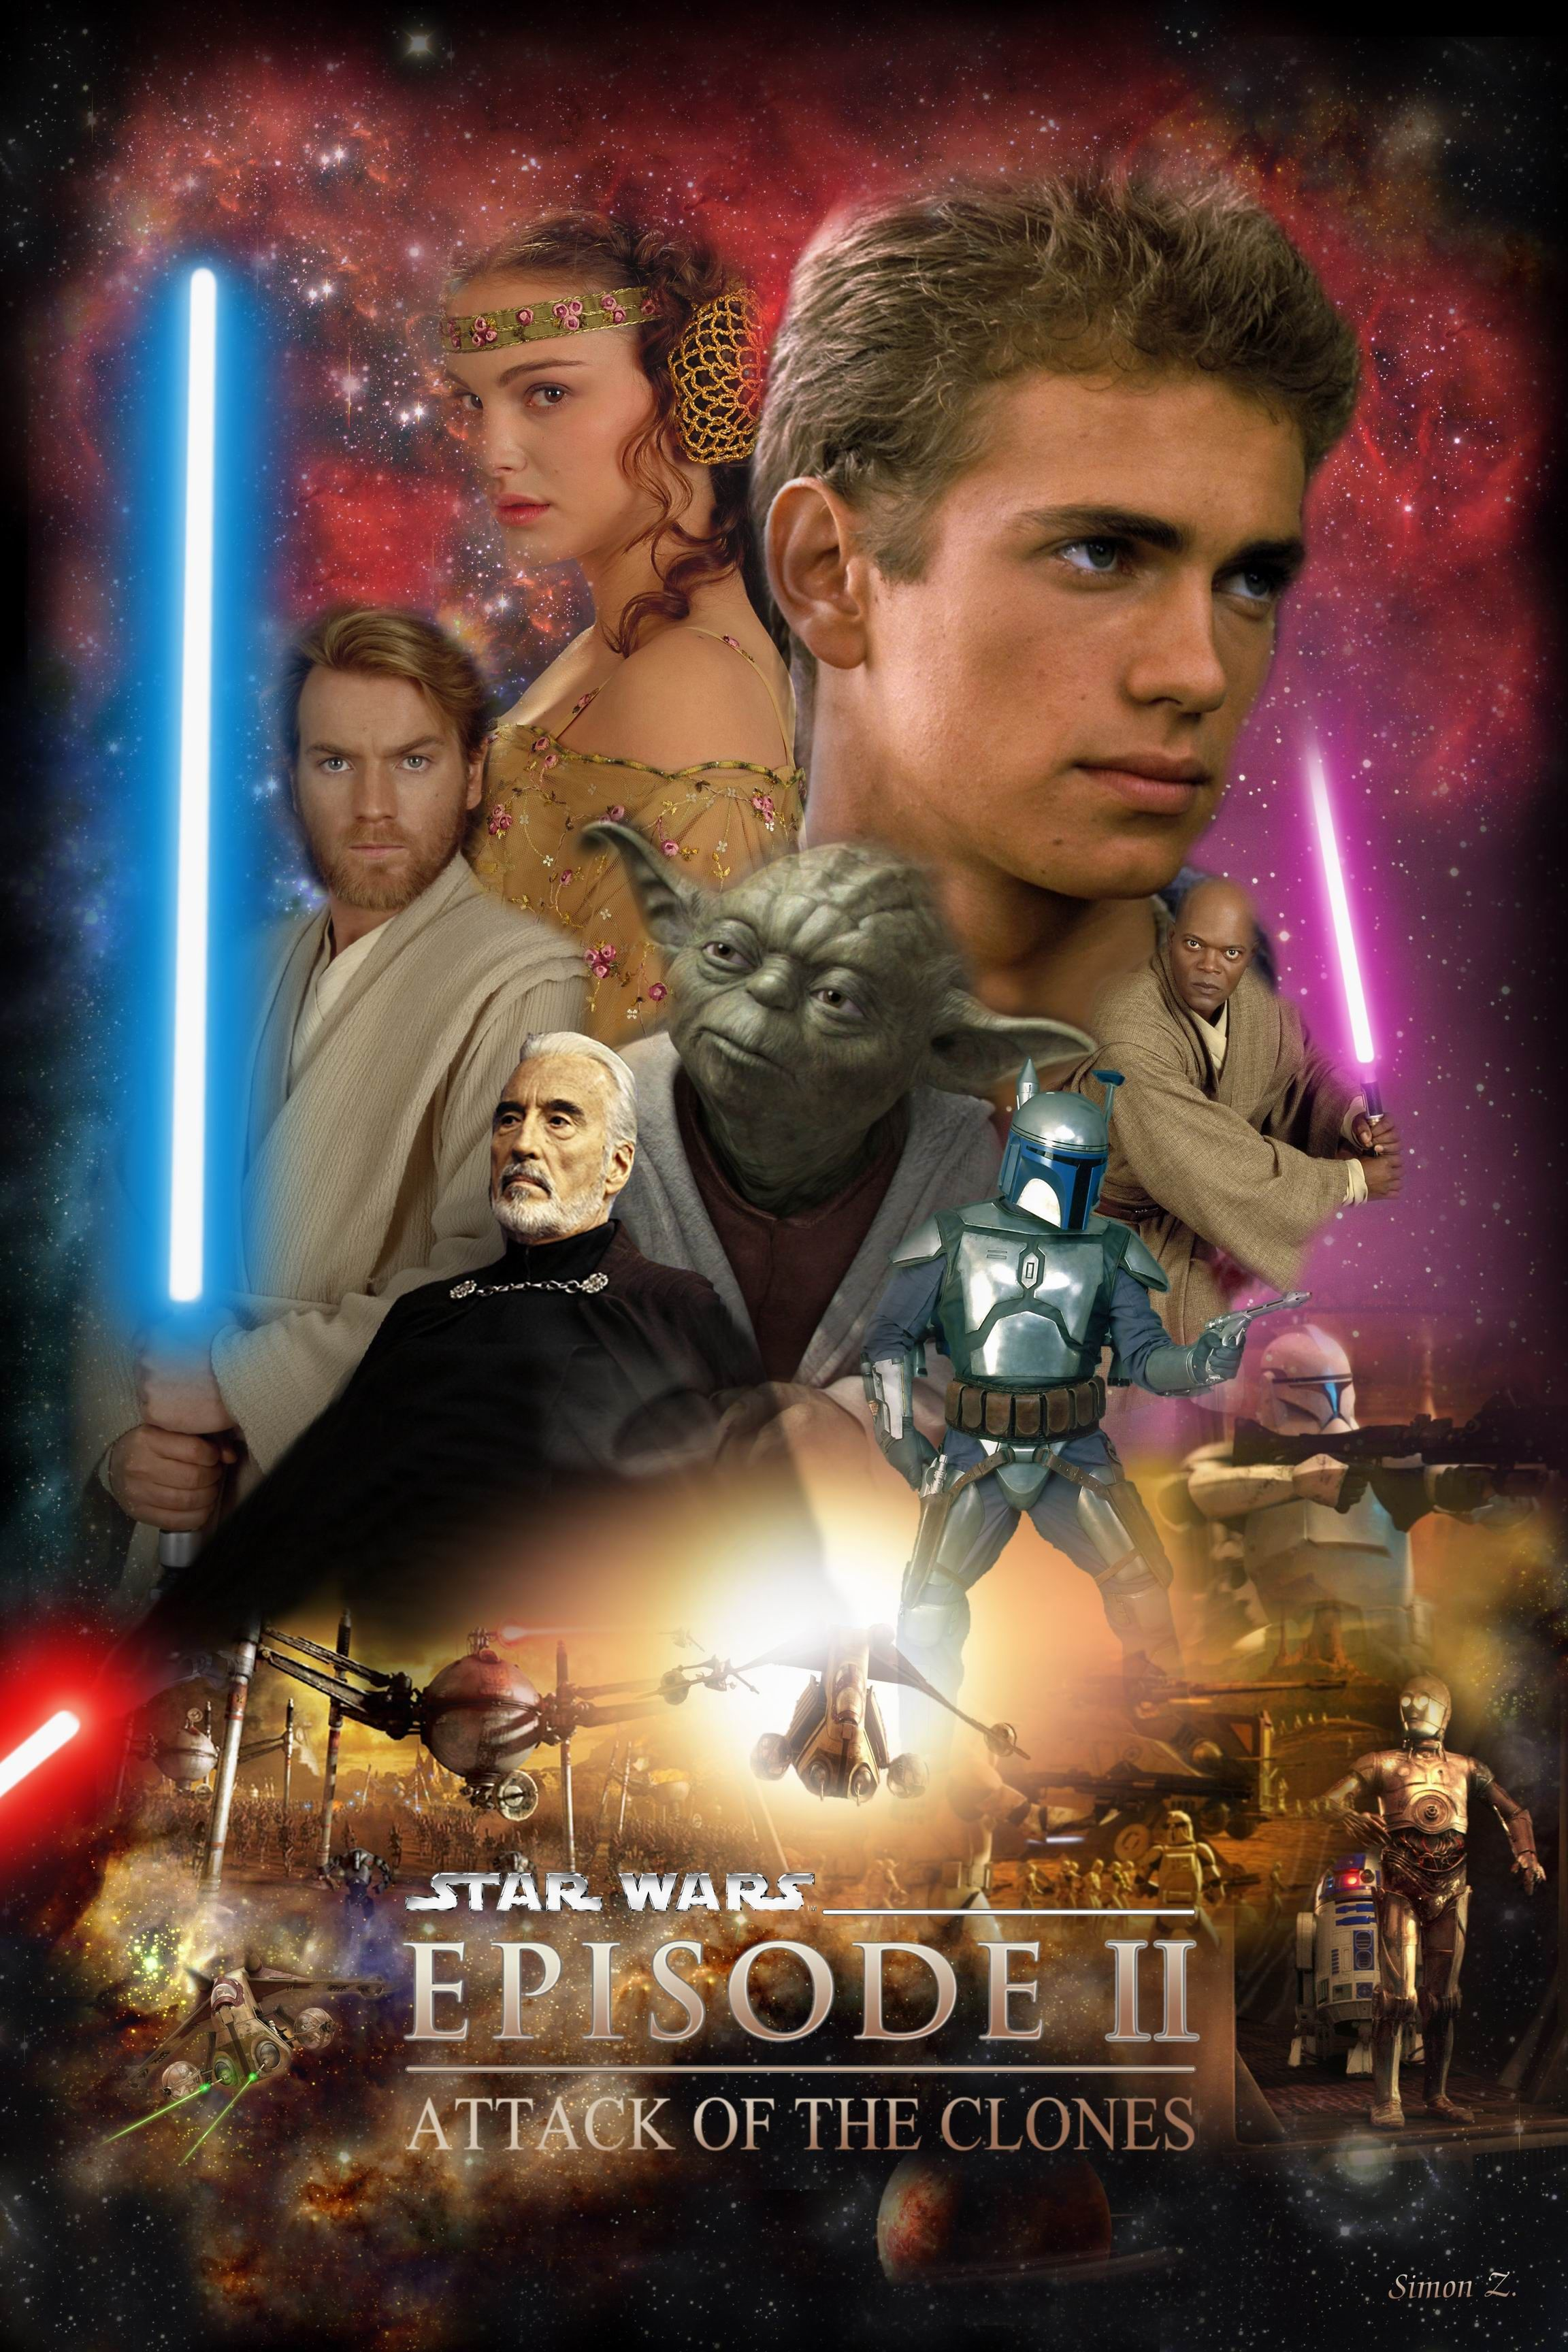 Star Wars Poster 70 Printable Posters Free Download Star